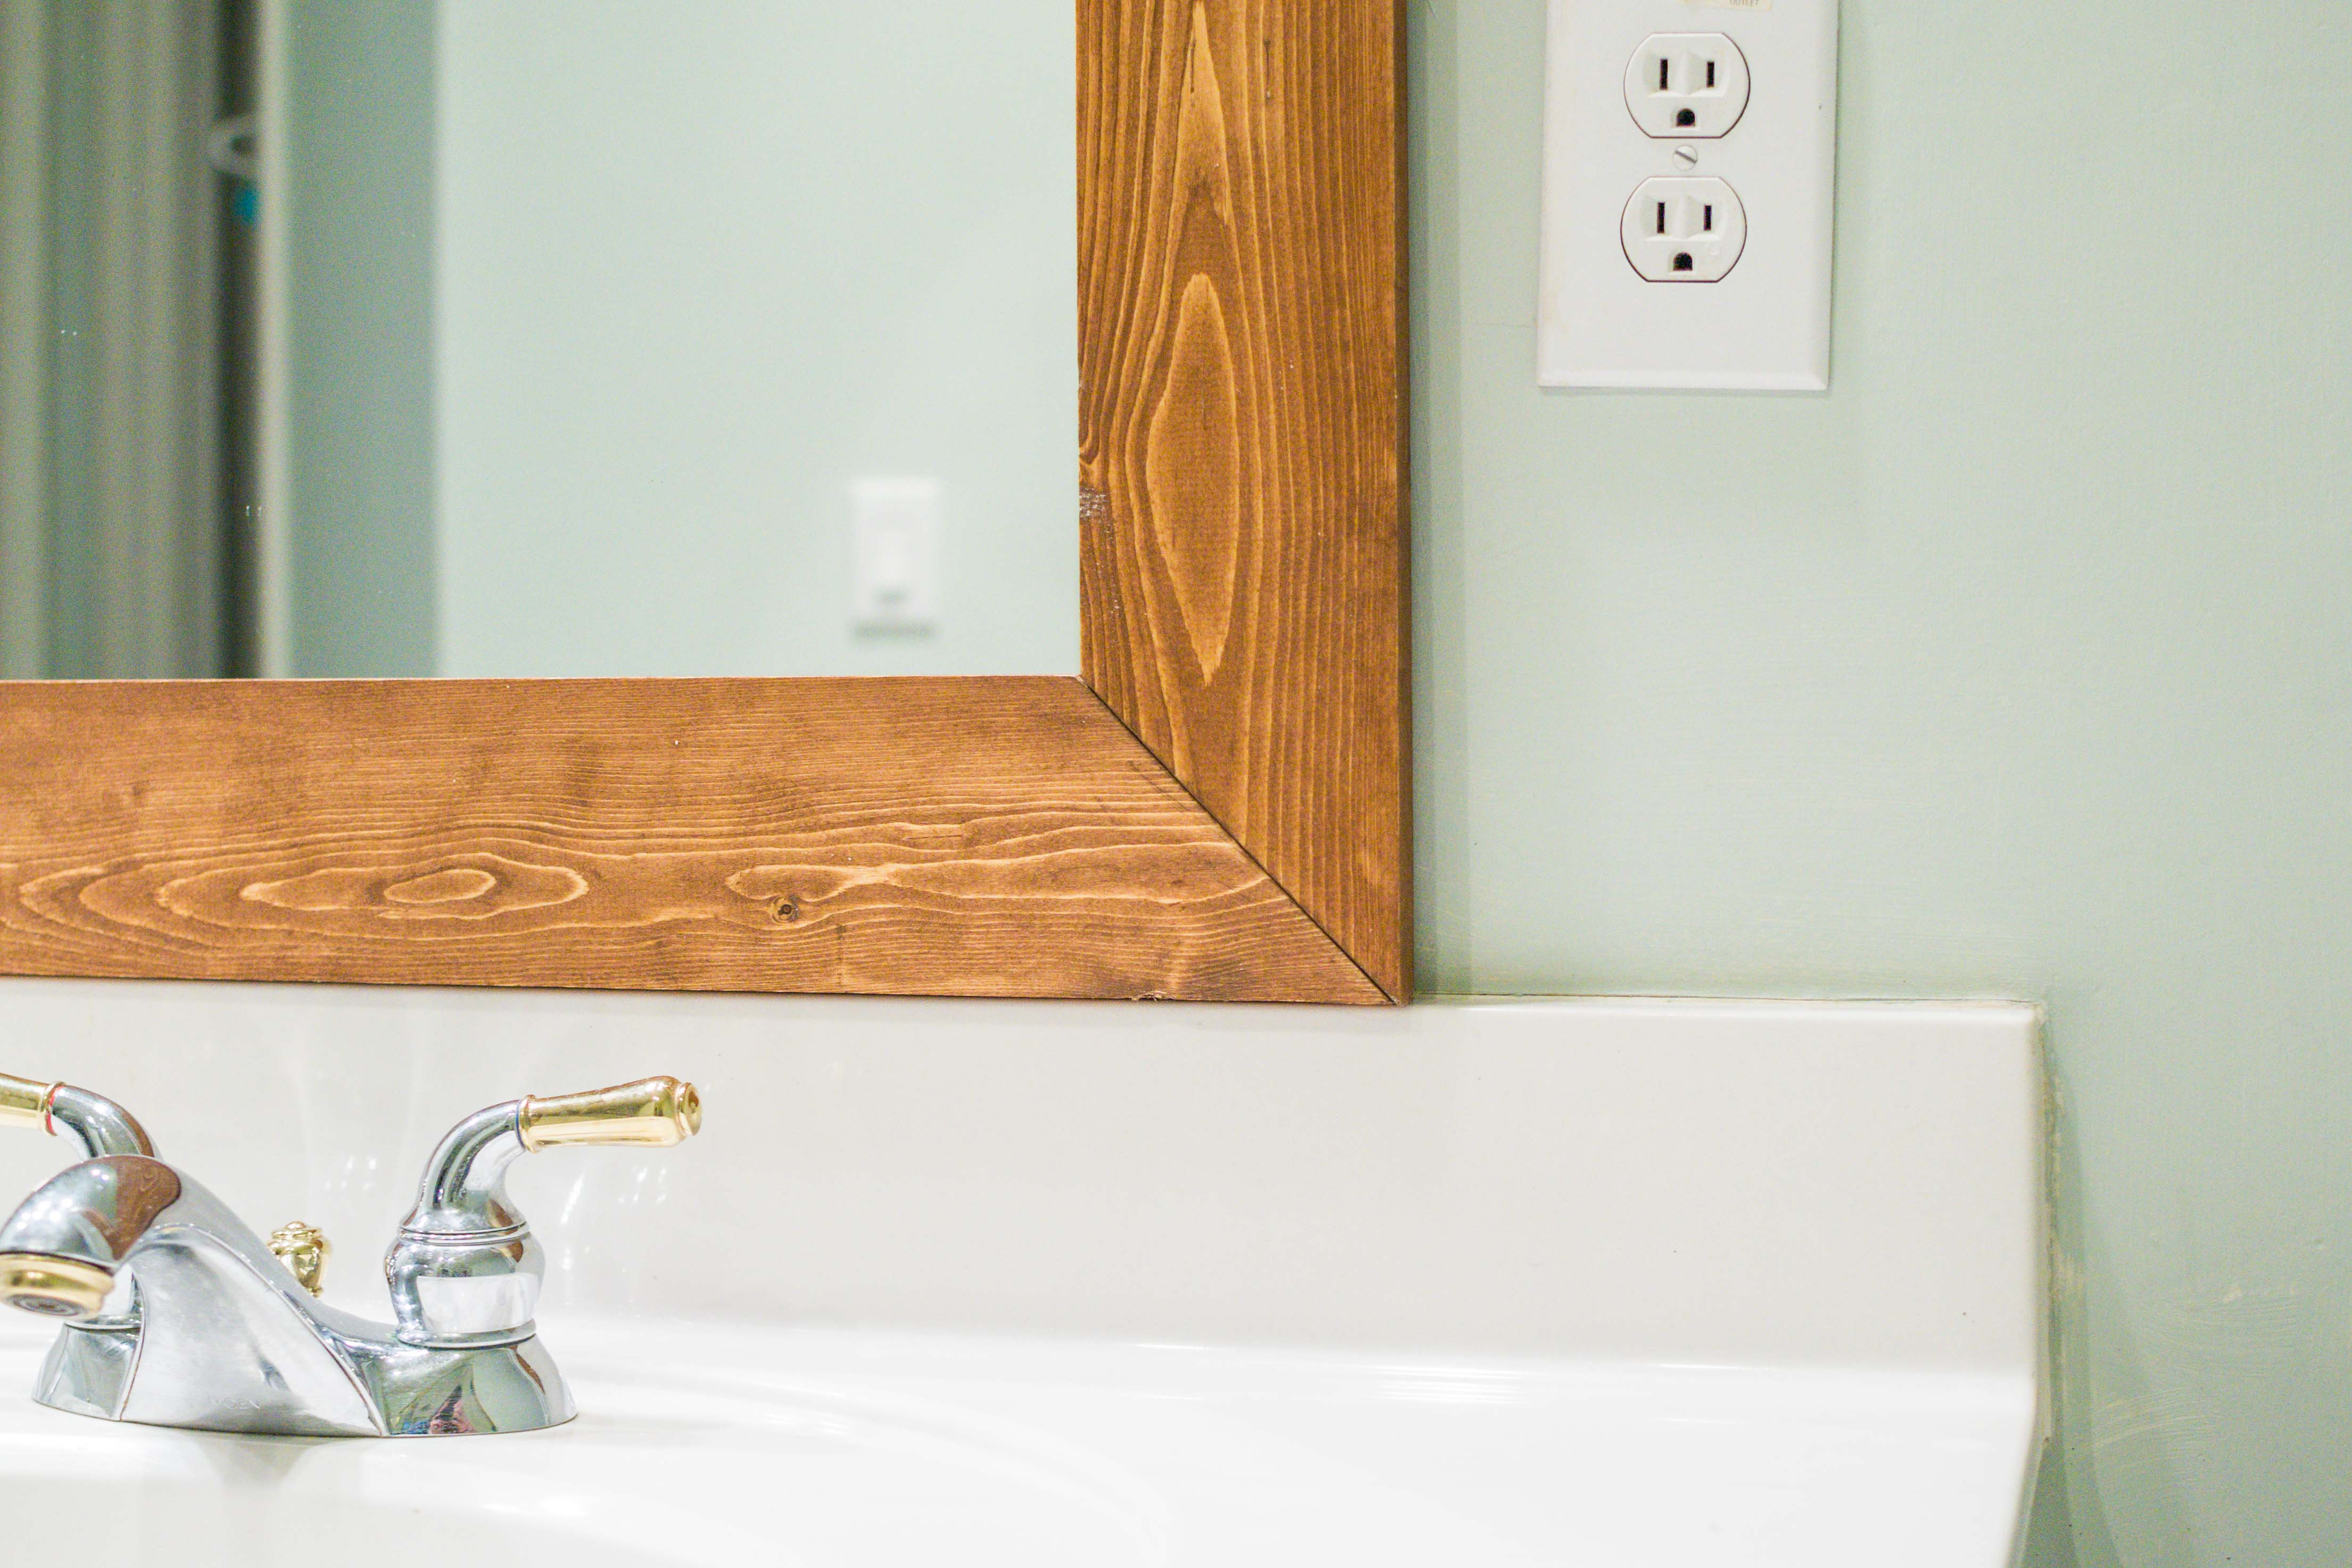 Do It Yourself Home Design: How To DIY Upgrade Your Bathroom Mirror With A Stained